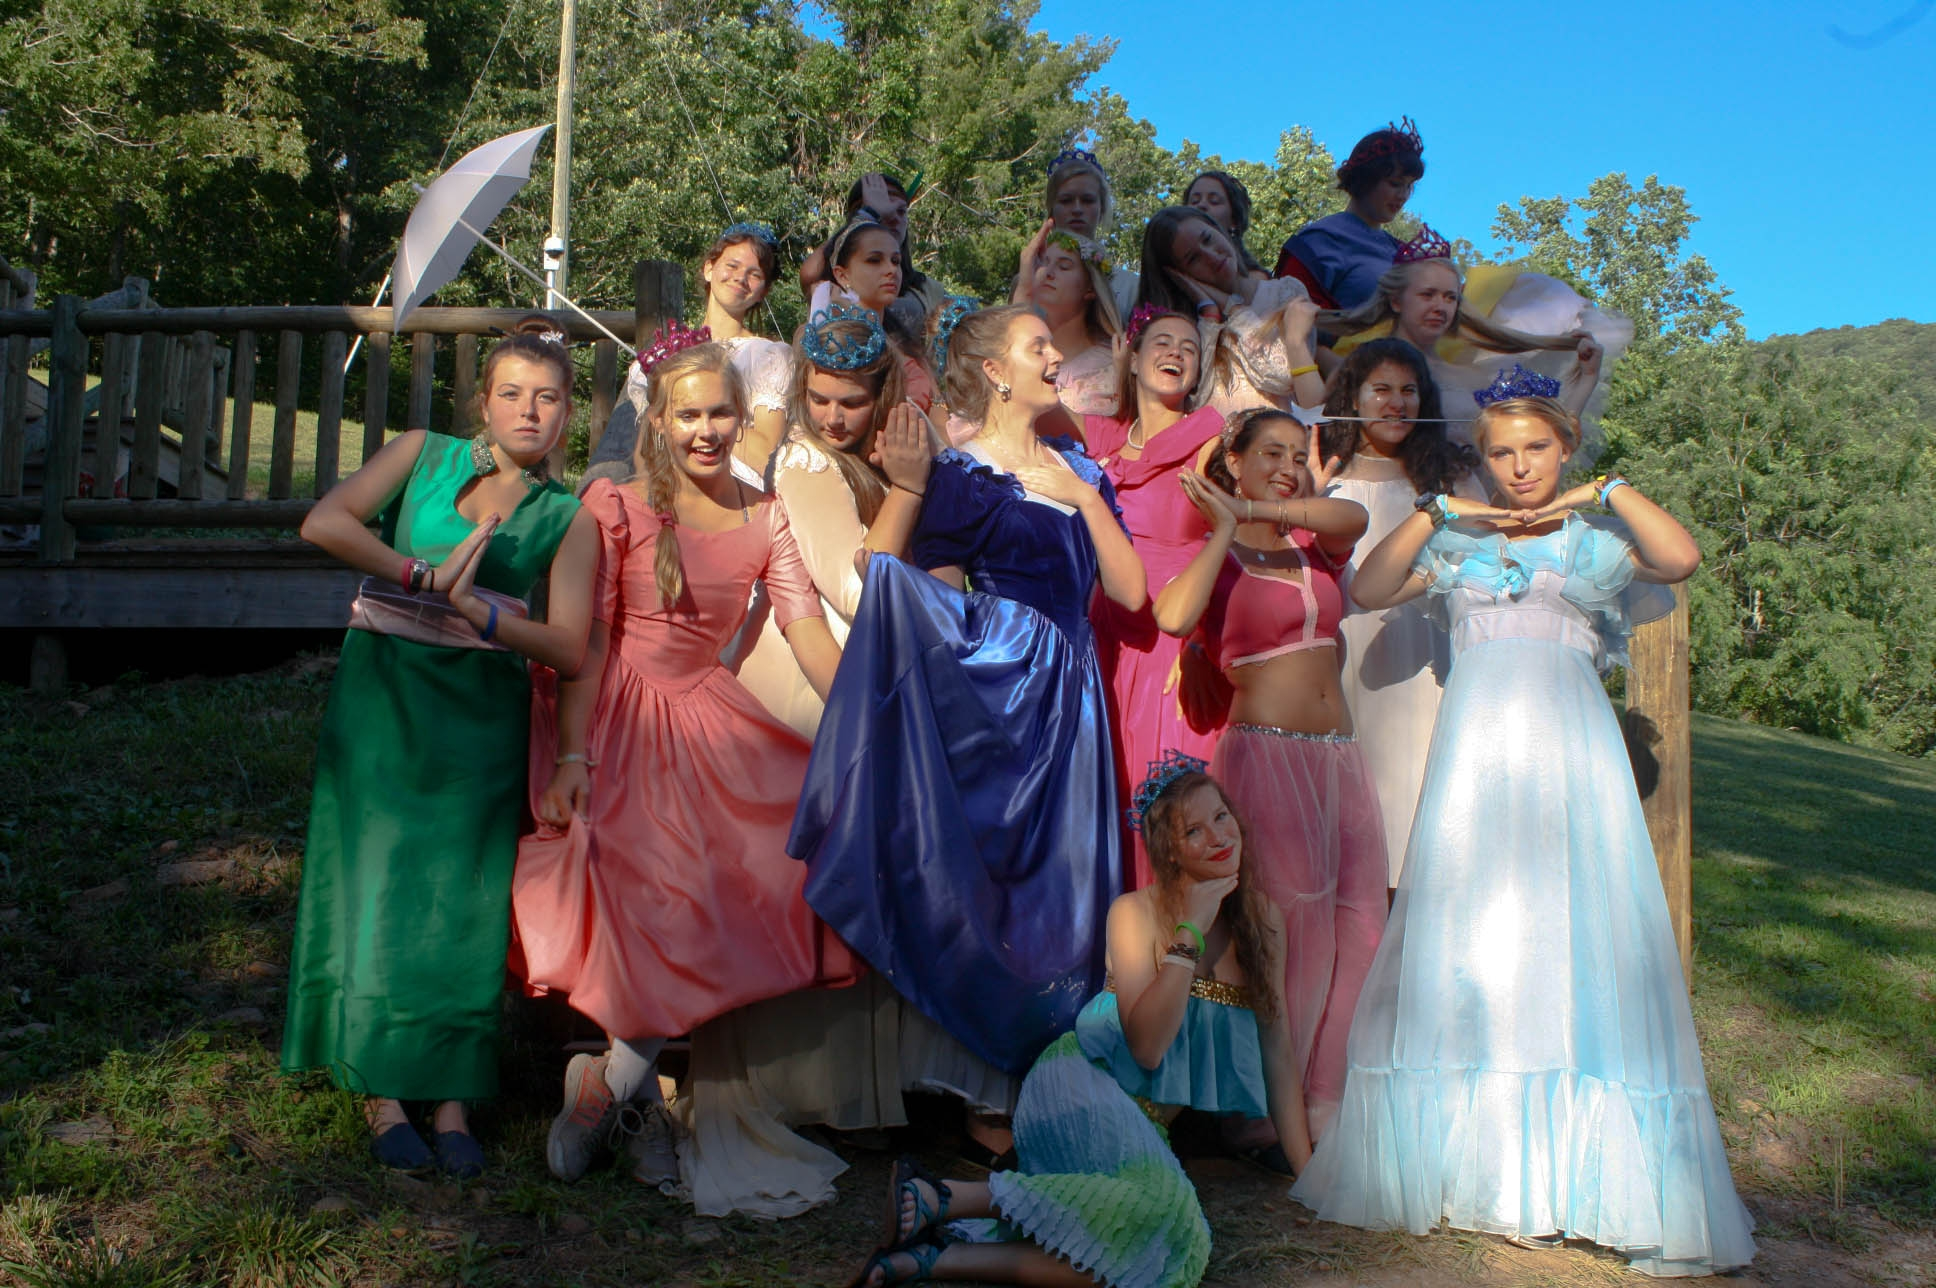 One of our rotating Mini Camp Banquet themes is Disney Princesses.